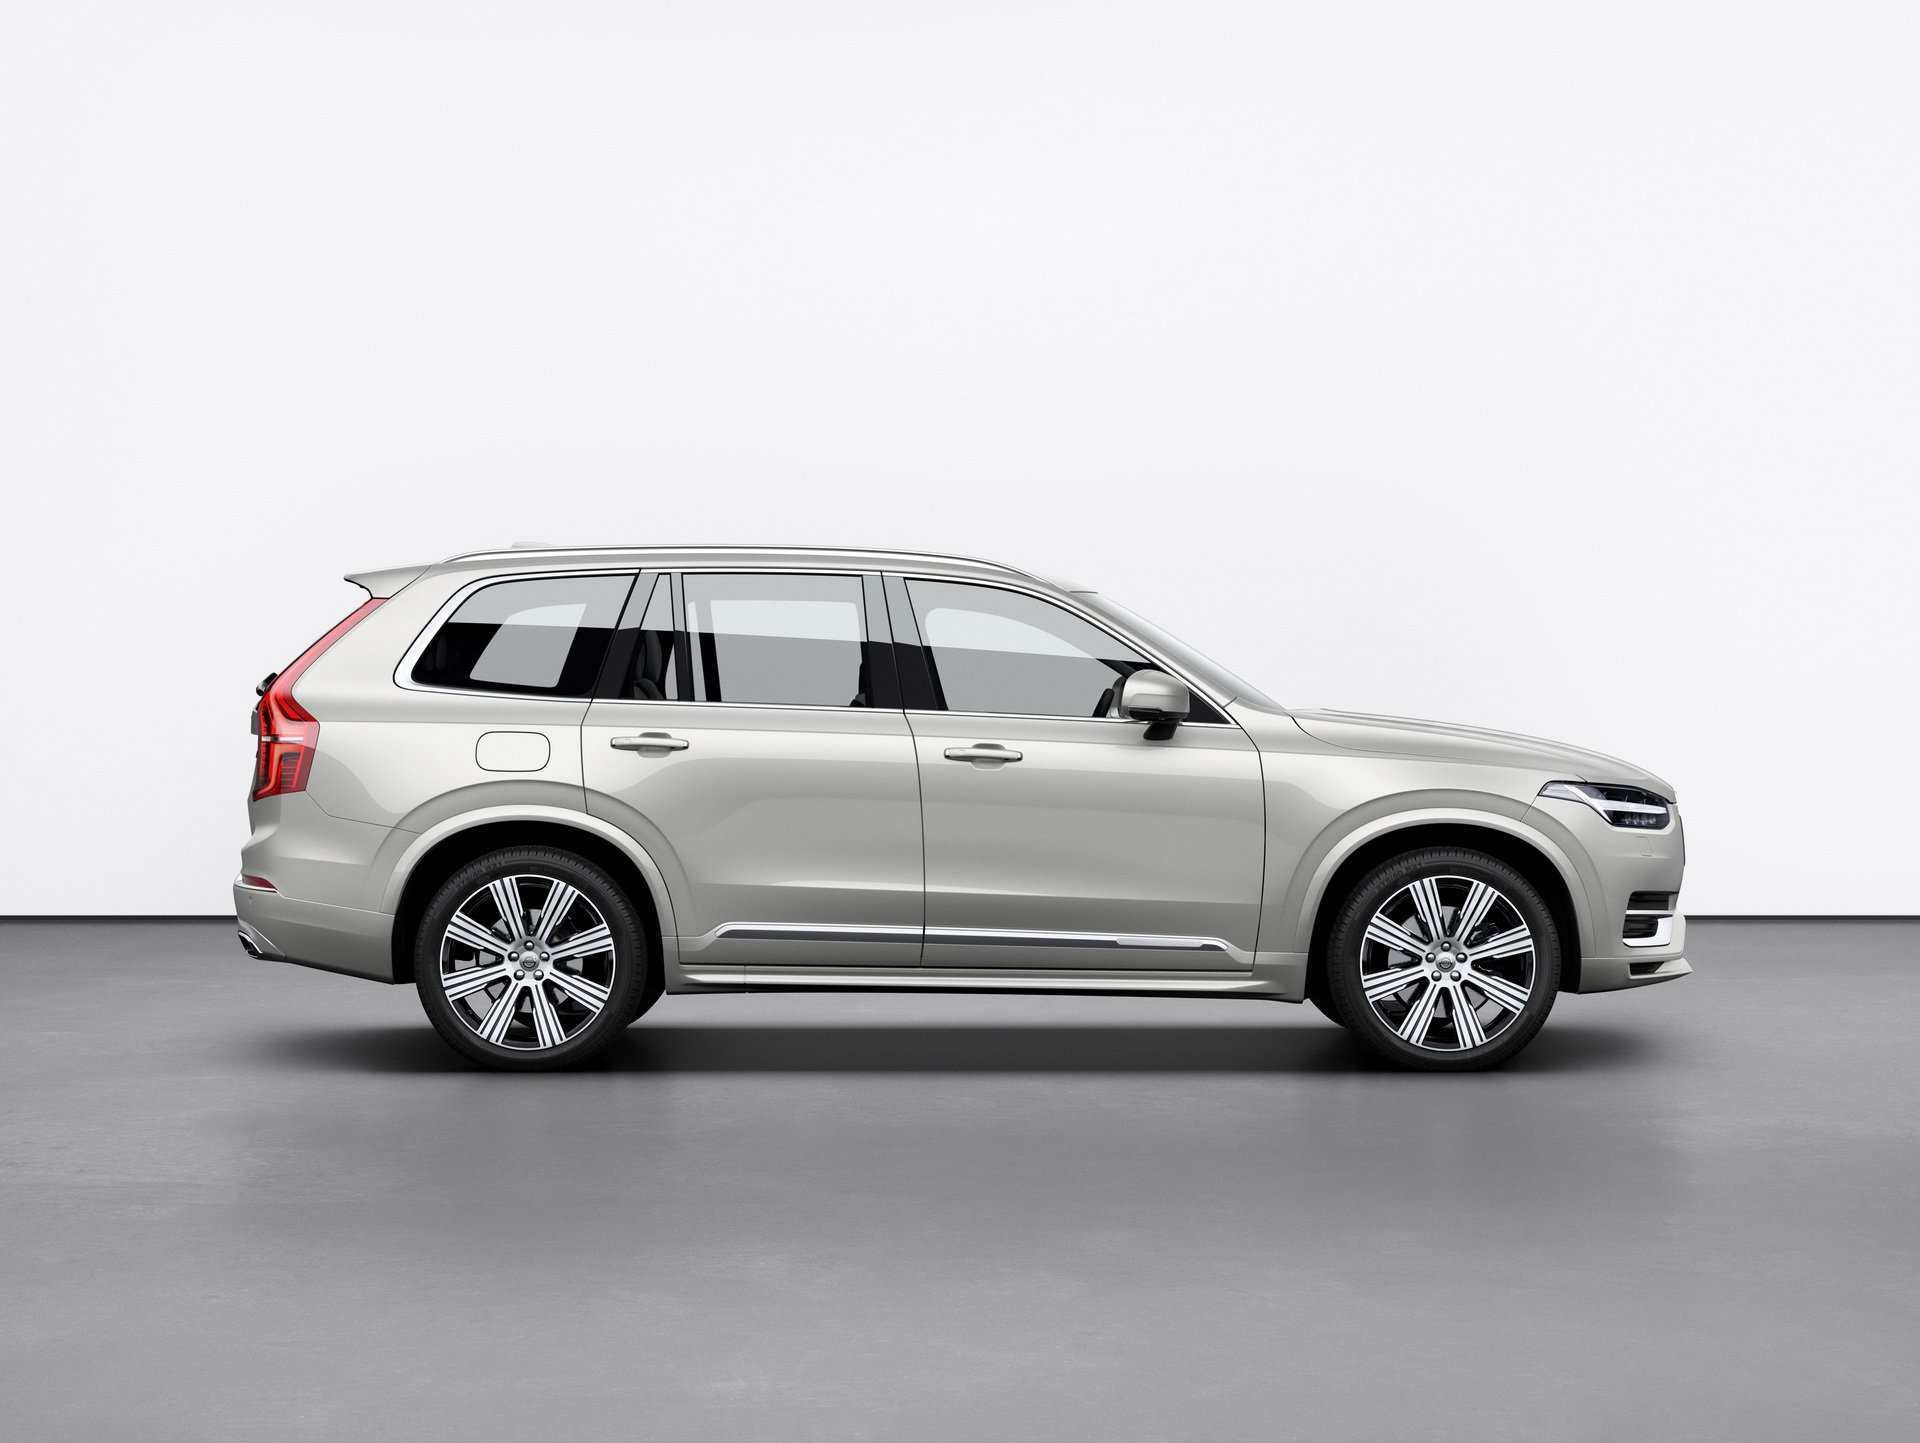 79 The Best 2020 Volvo XC90 Spesification